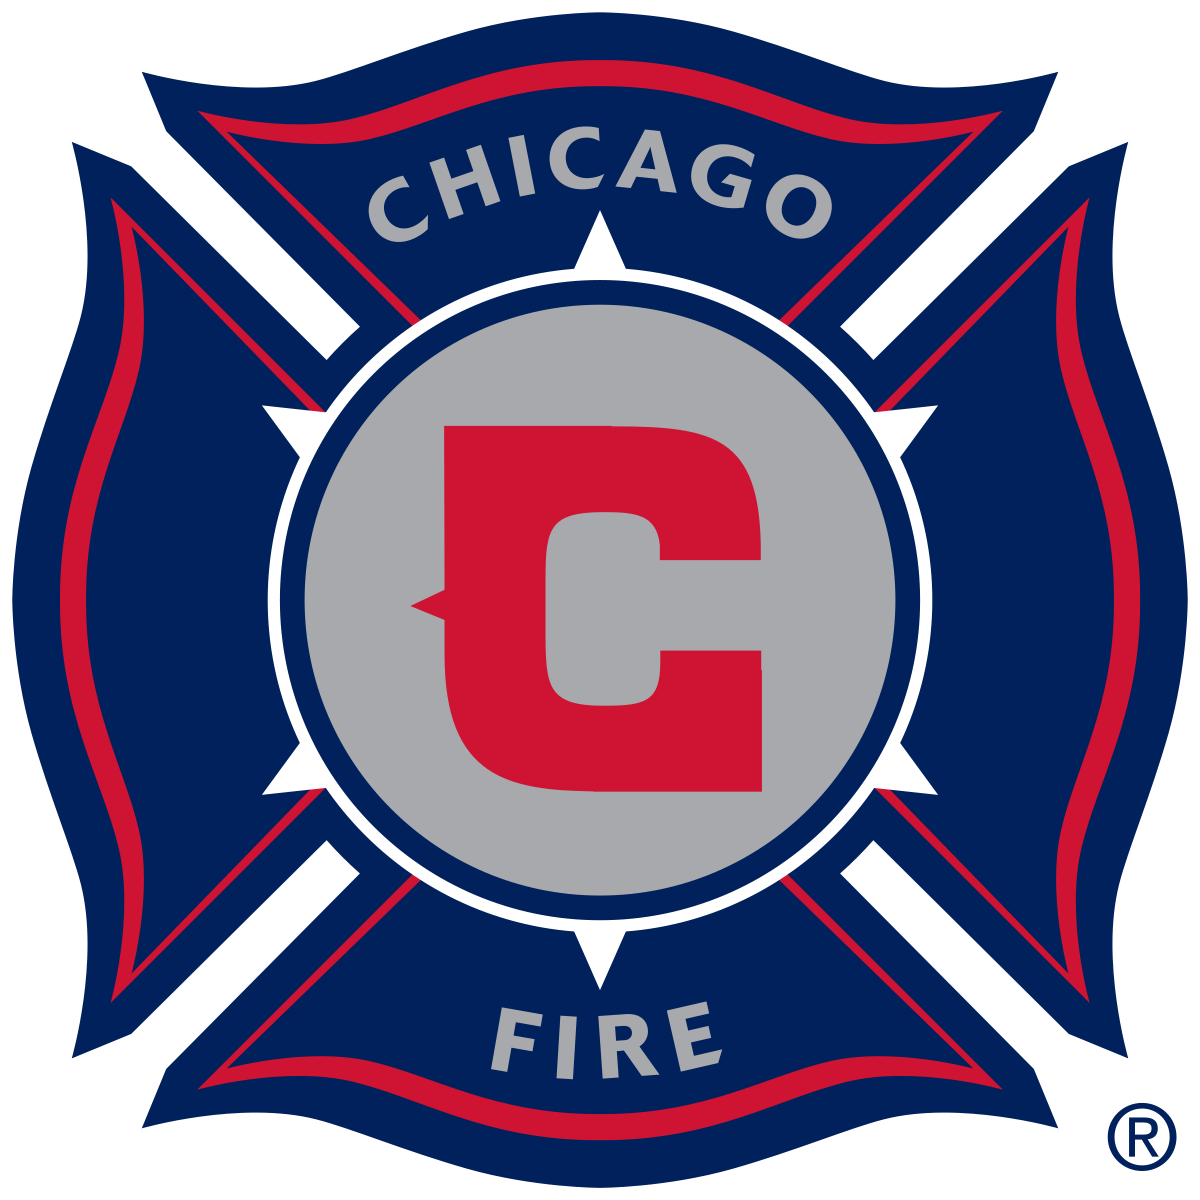 Chicago Fire logo.png